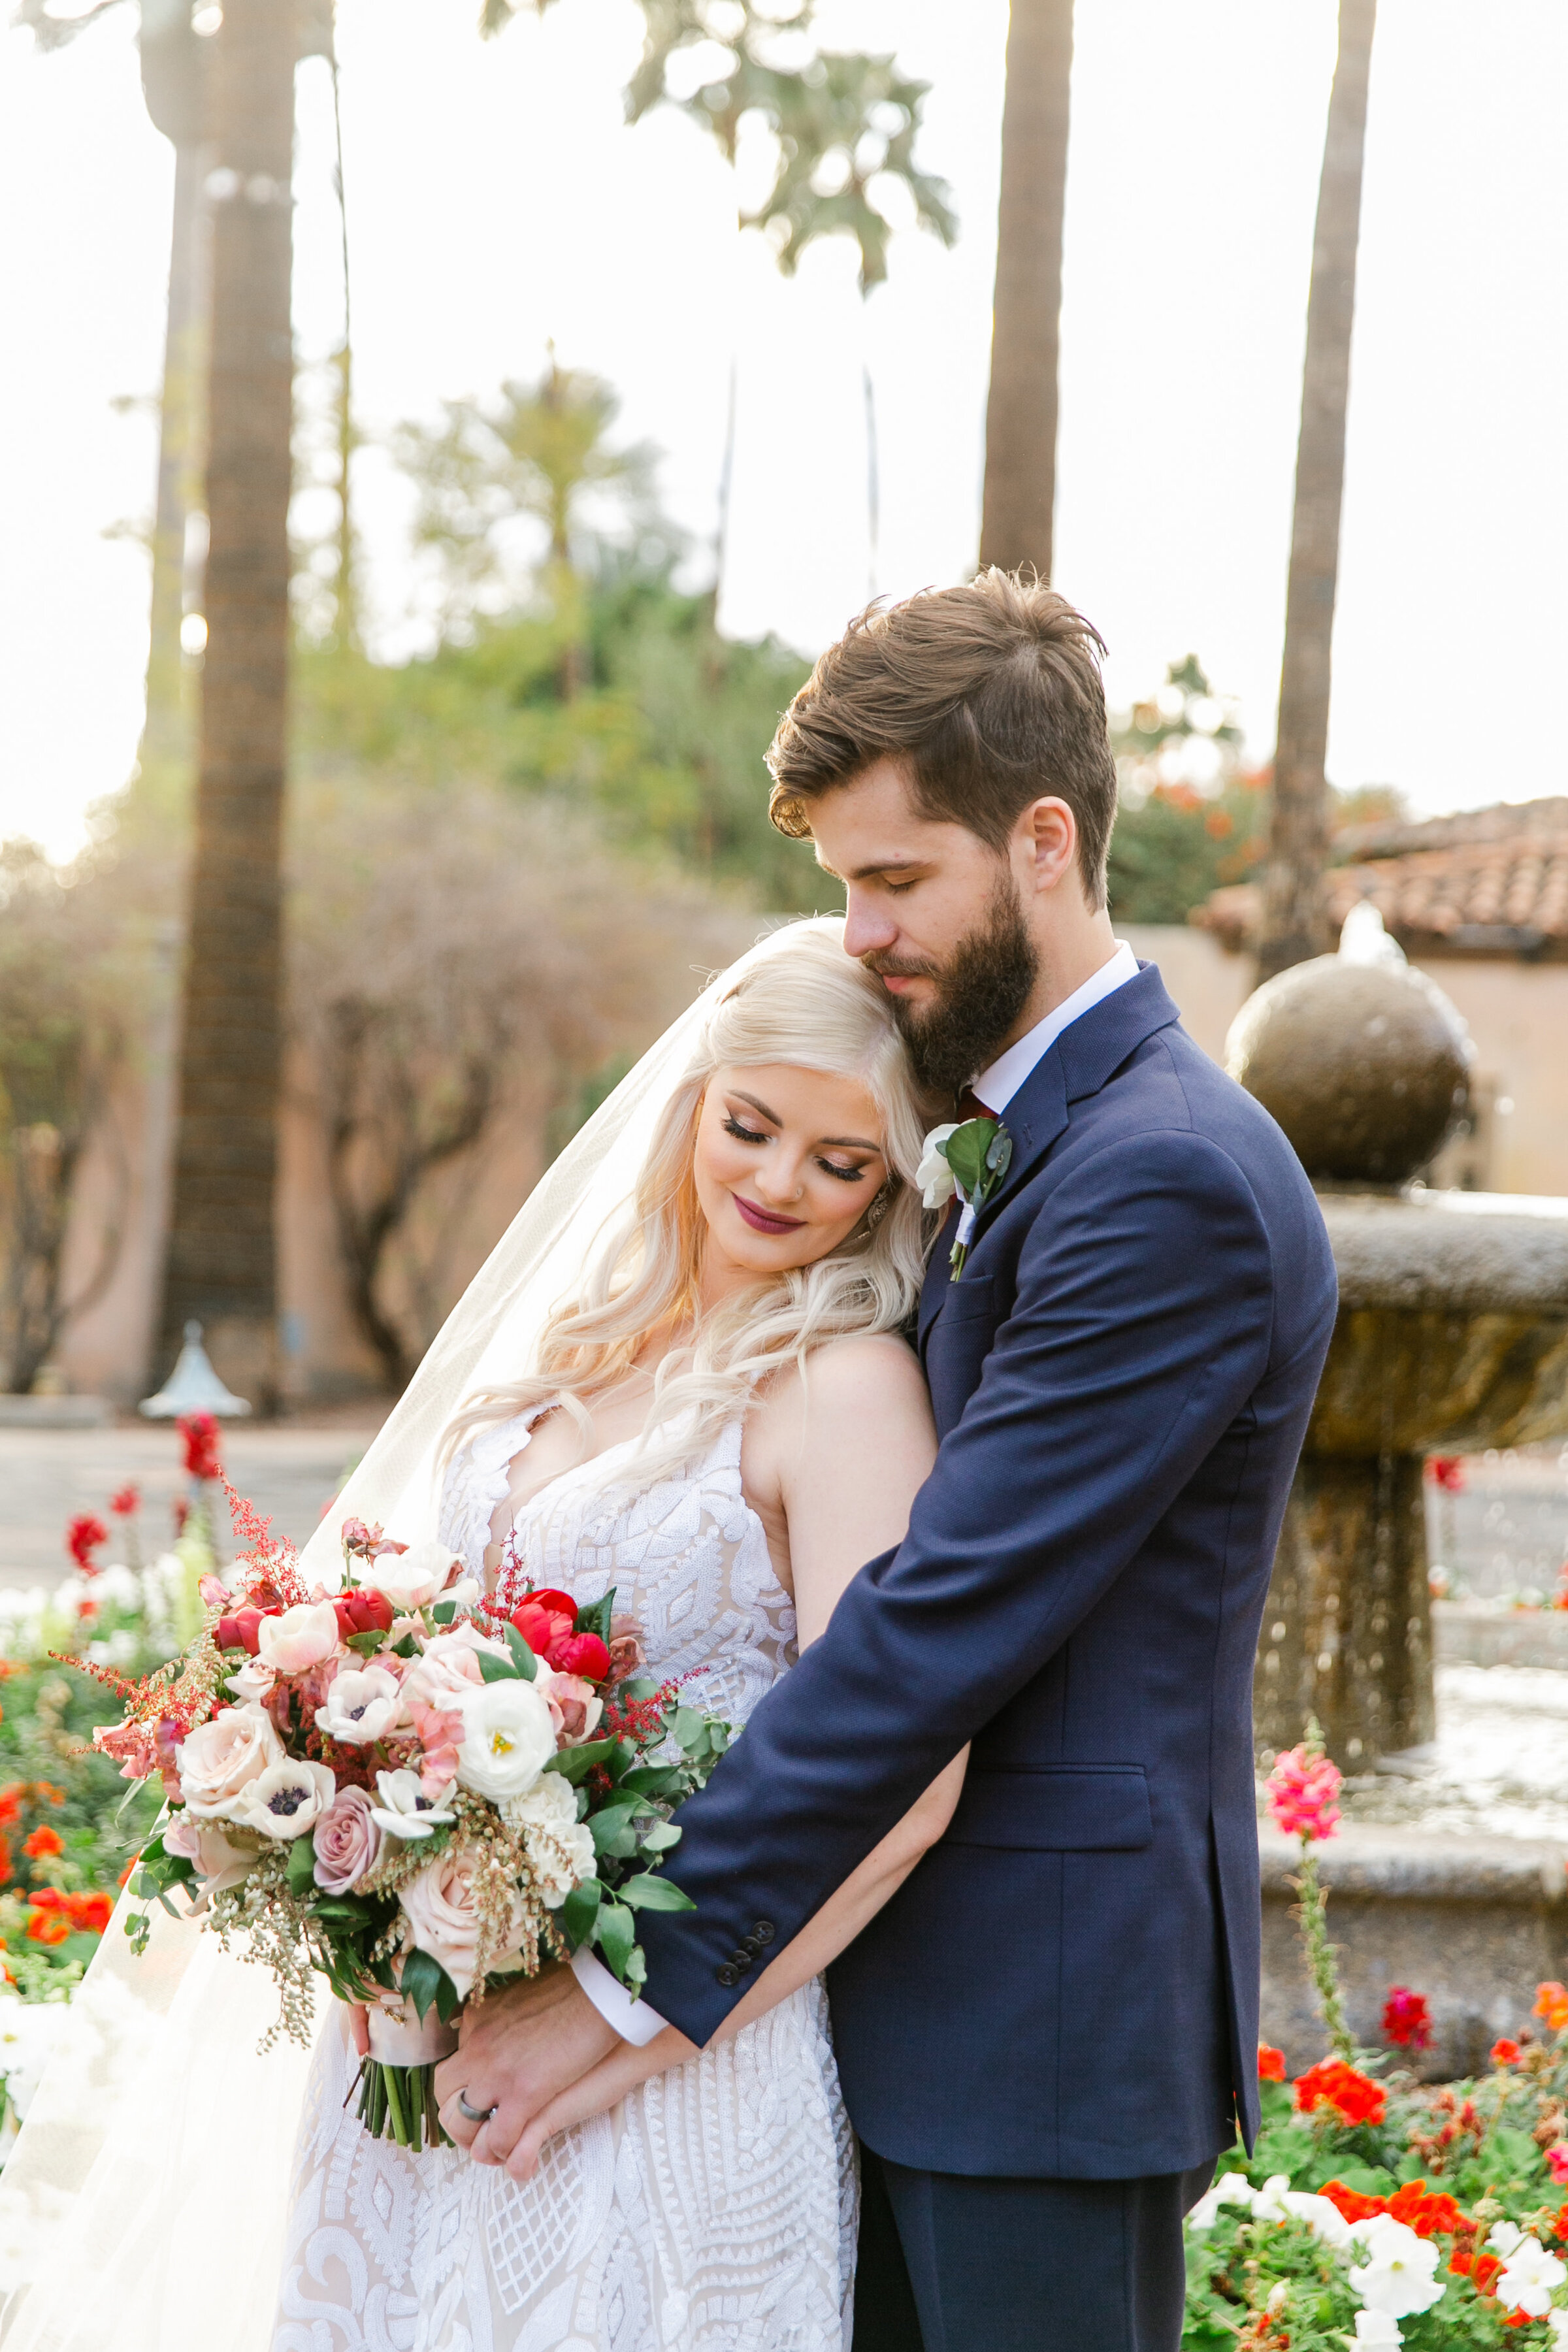 Karlie Colleen Photography - The Royal Palms Wedding - Some Like It Classic - Alex & Sam-545